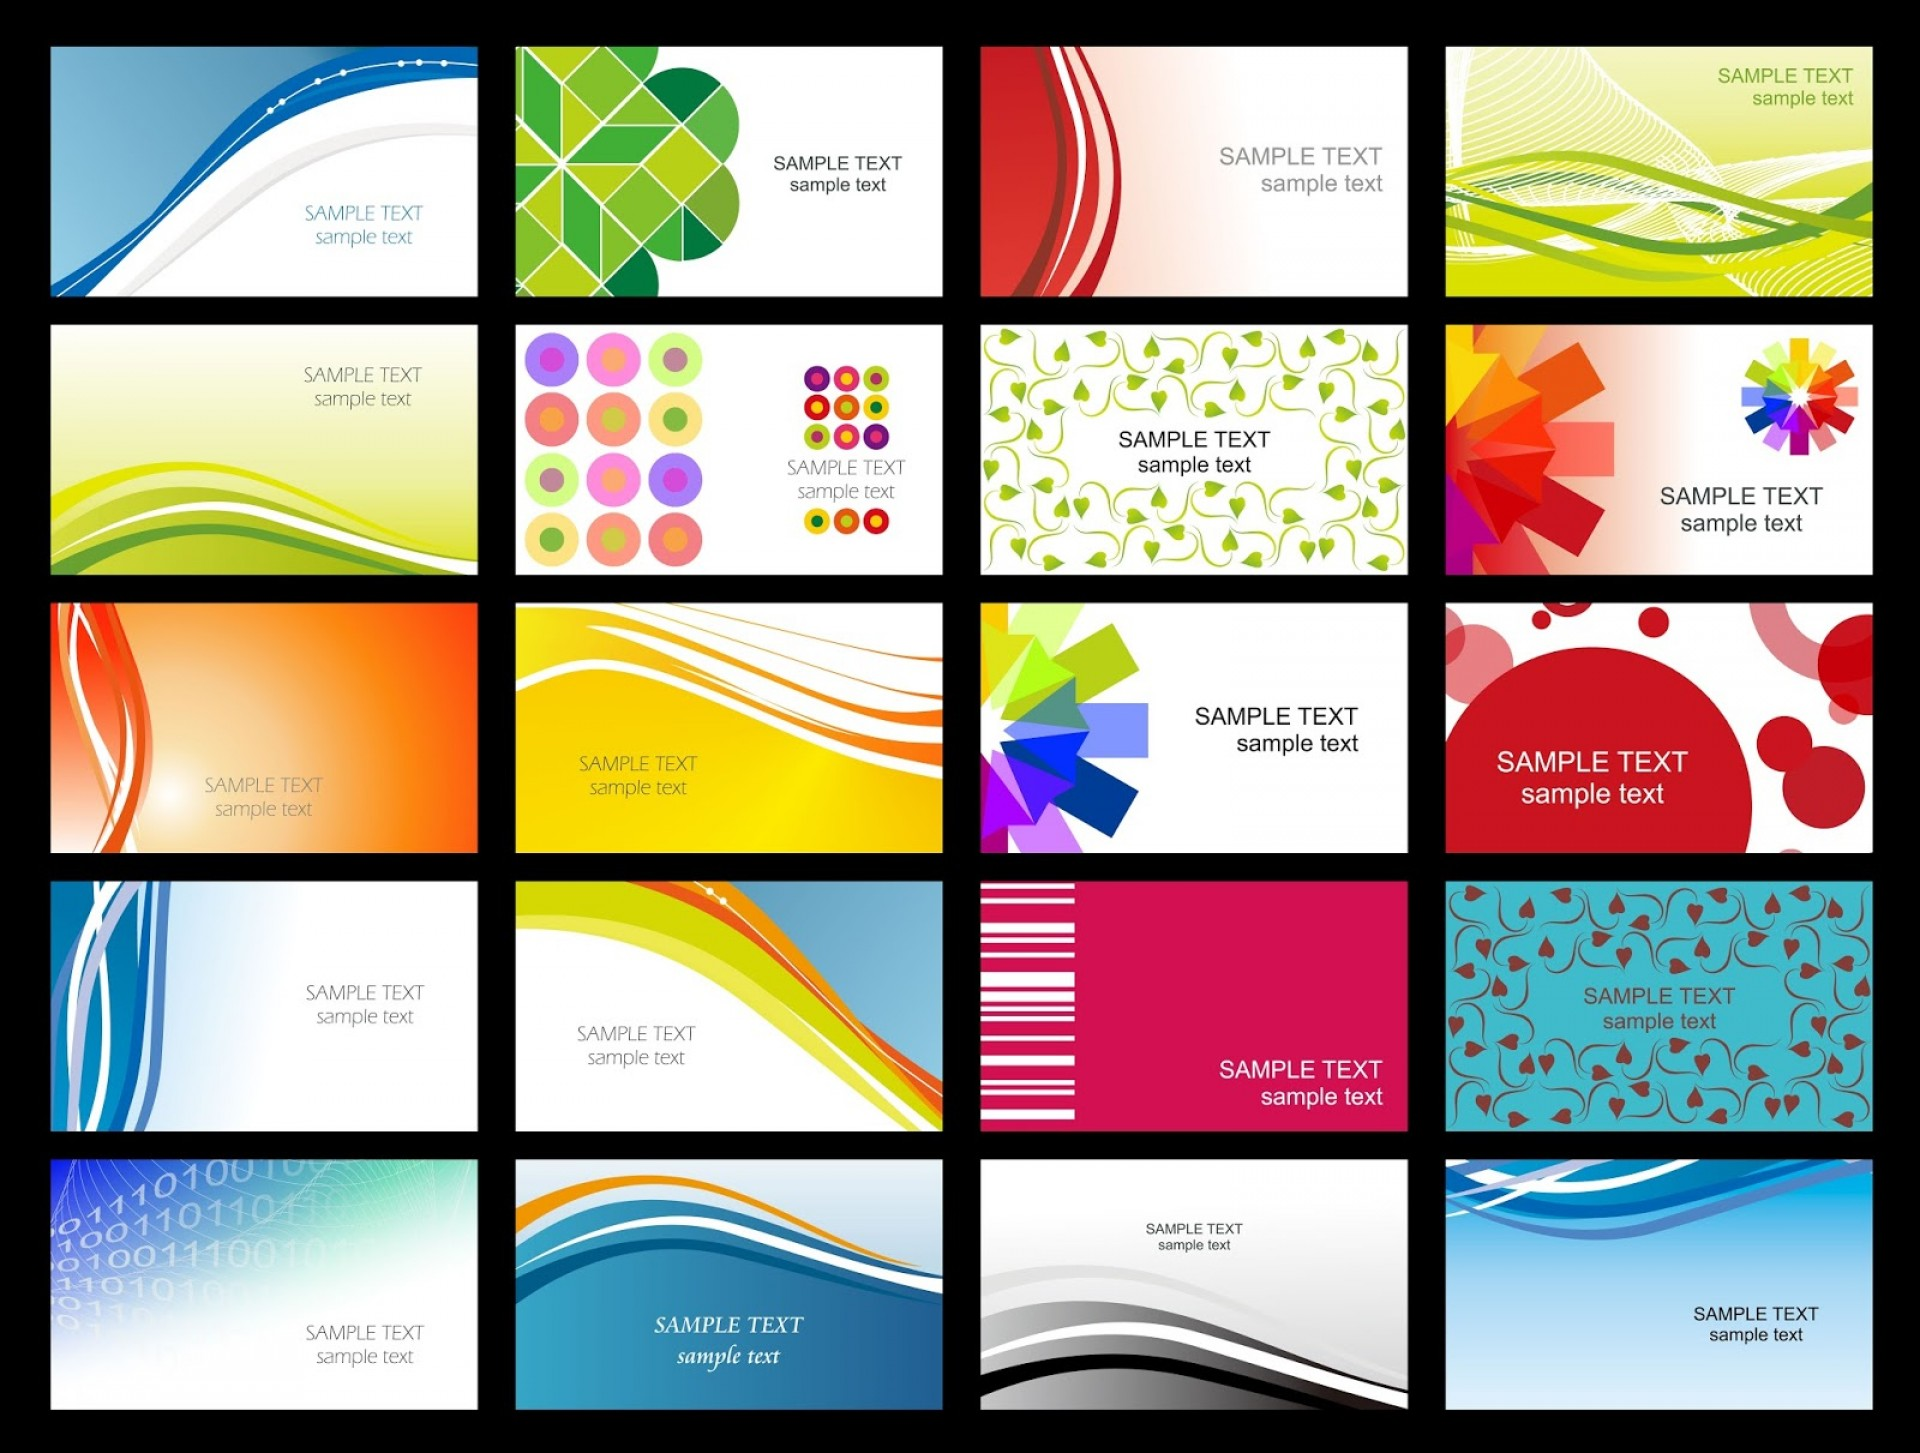 Word Busines Card Template Free Printable Idea  Microsoft 2007 Double Sided Download Blank1920